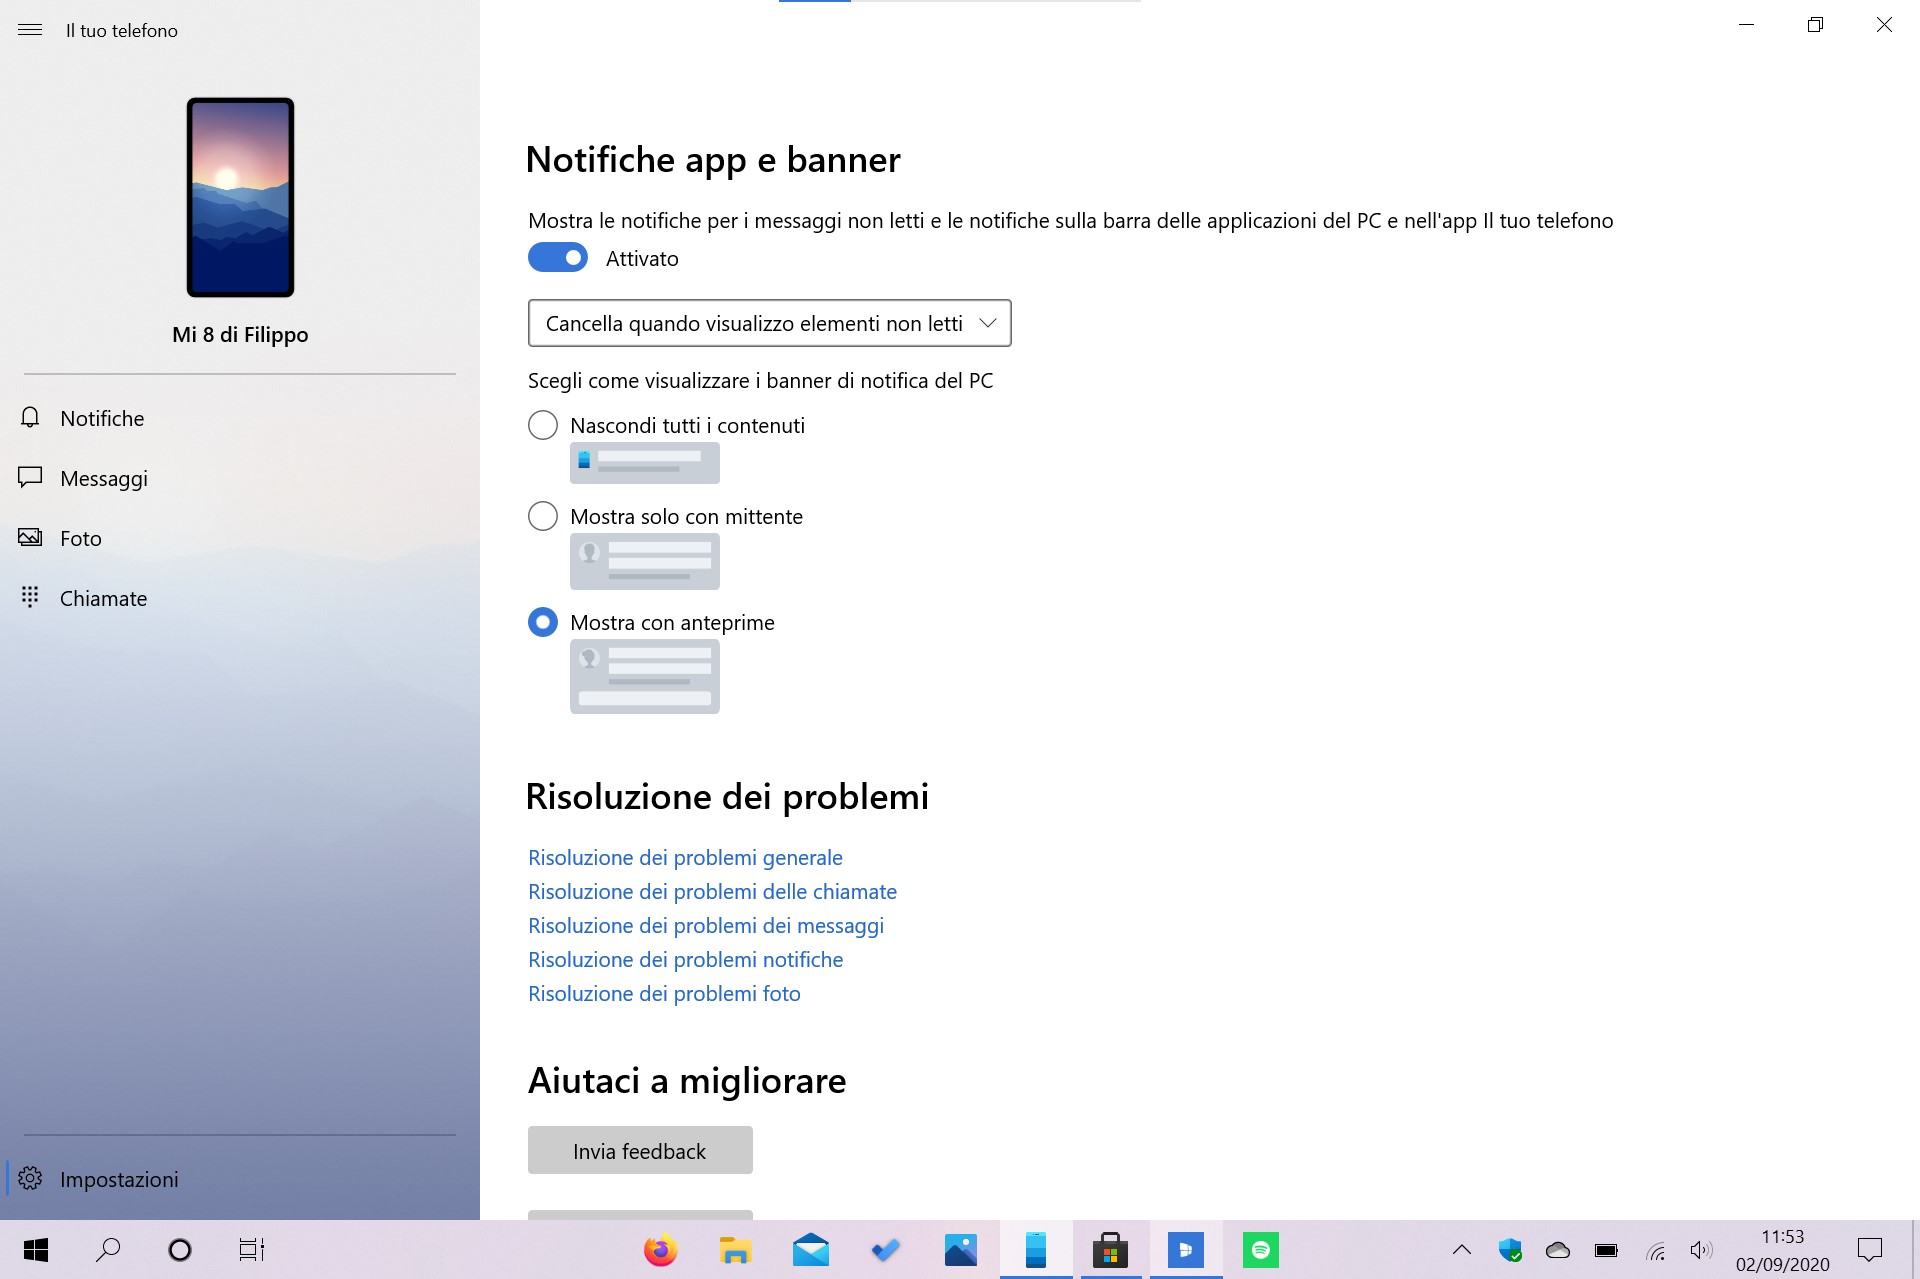 Il tuo telefono (Your Phone) per Windows 10 nuove opzioni di privacy per le notifiche